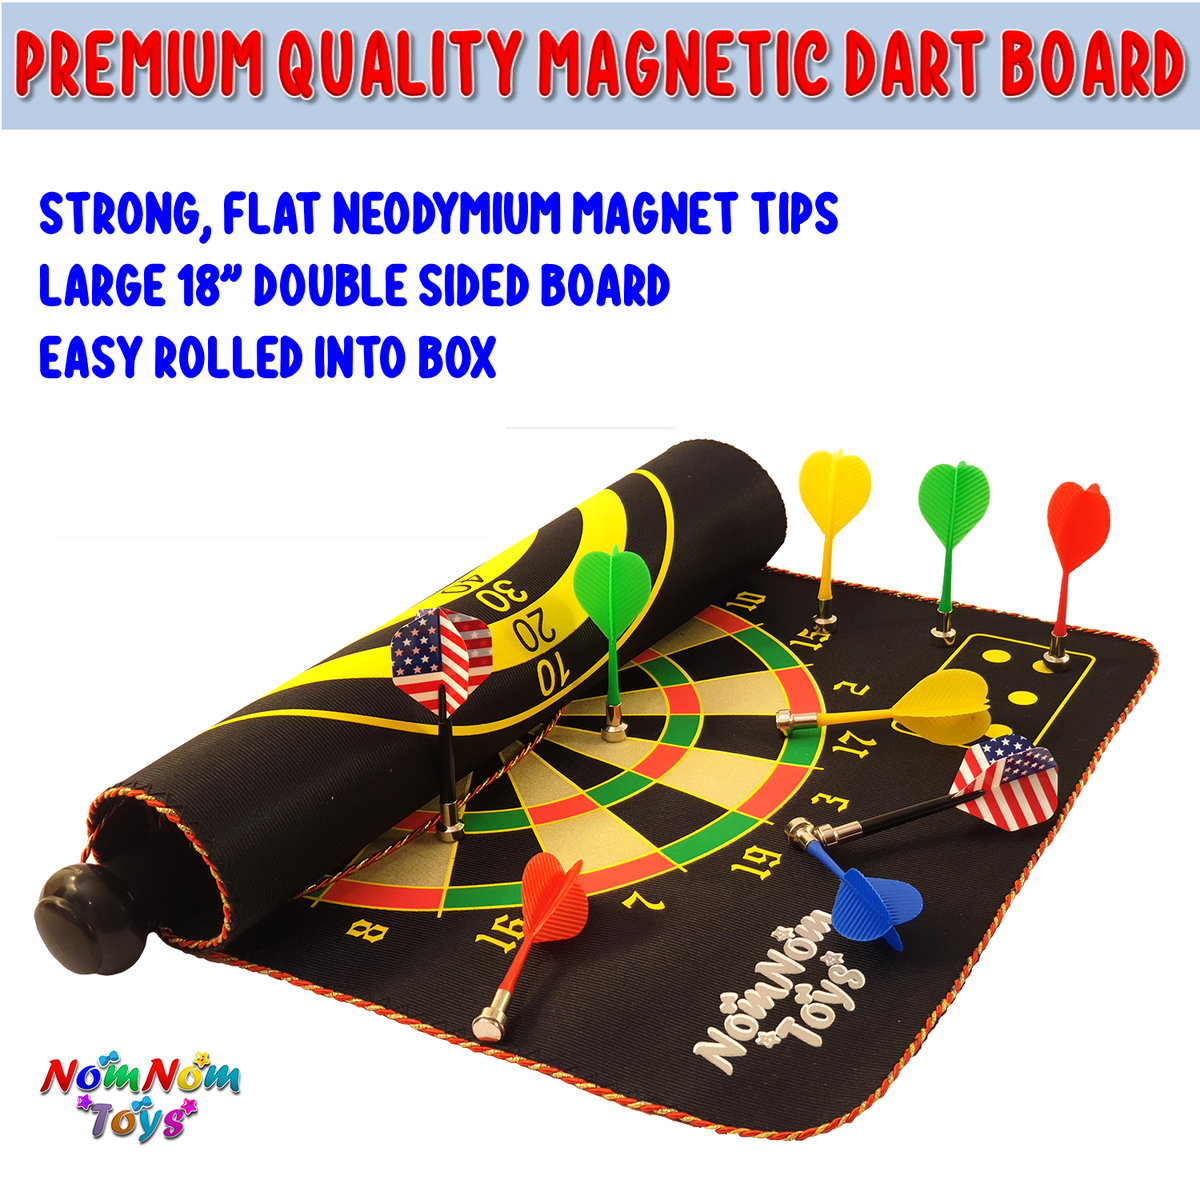 Magnetic Dart Board for Kids, Best Toy Gift for 5-15 Years Old Boys, 15 pcs Magnetic Darts, 18